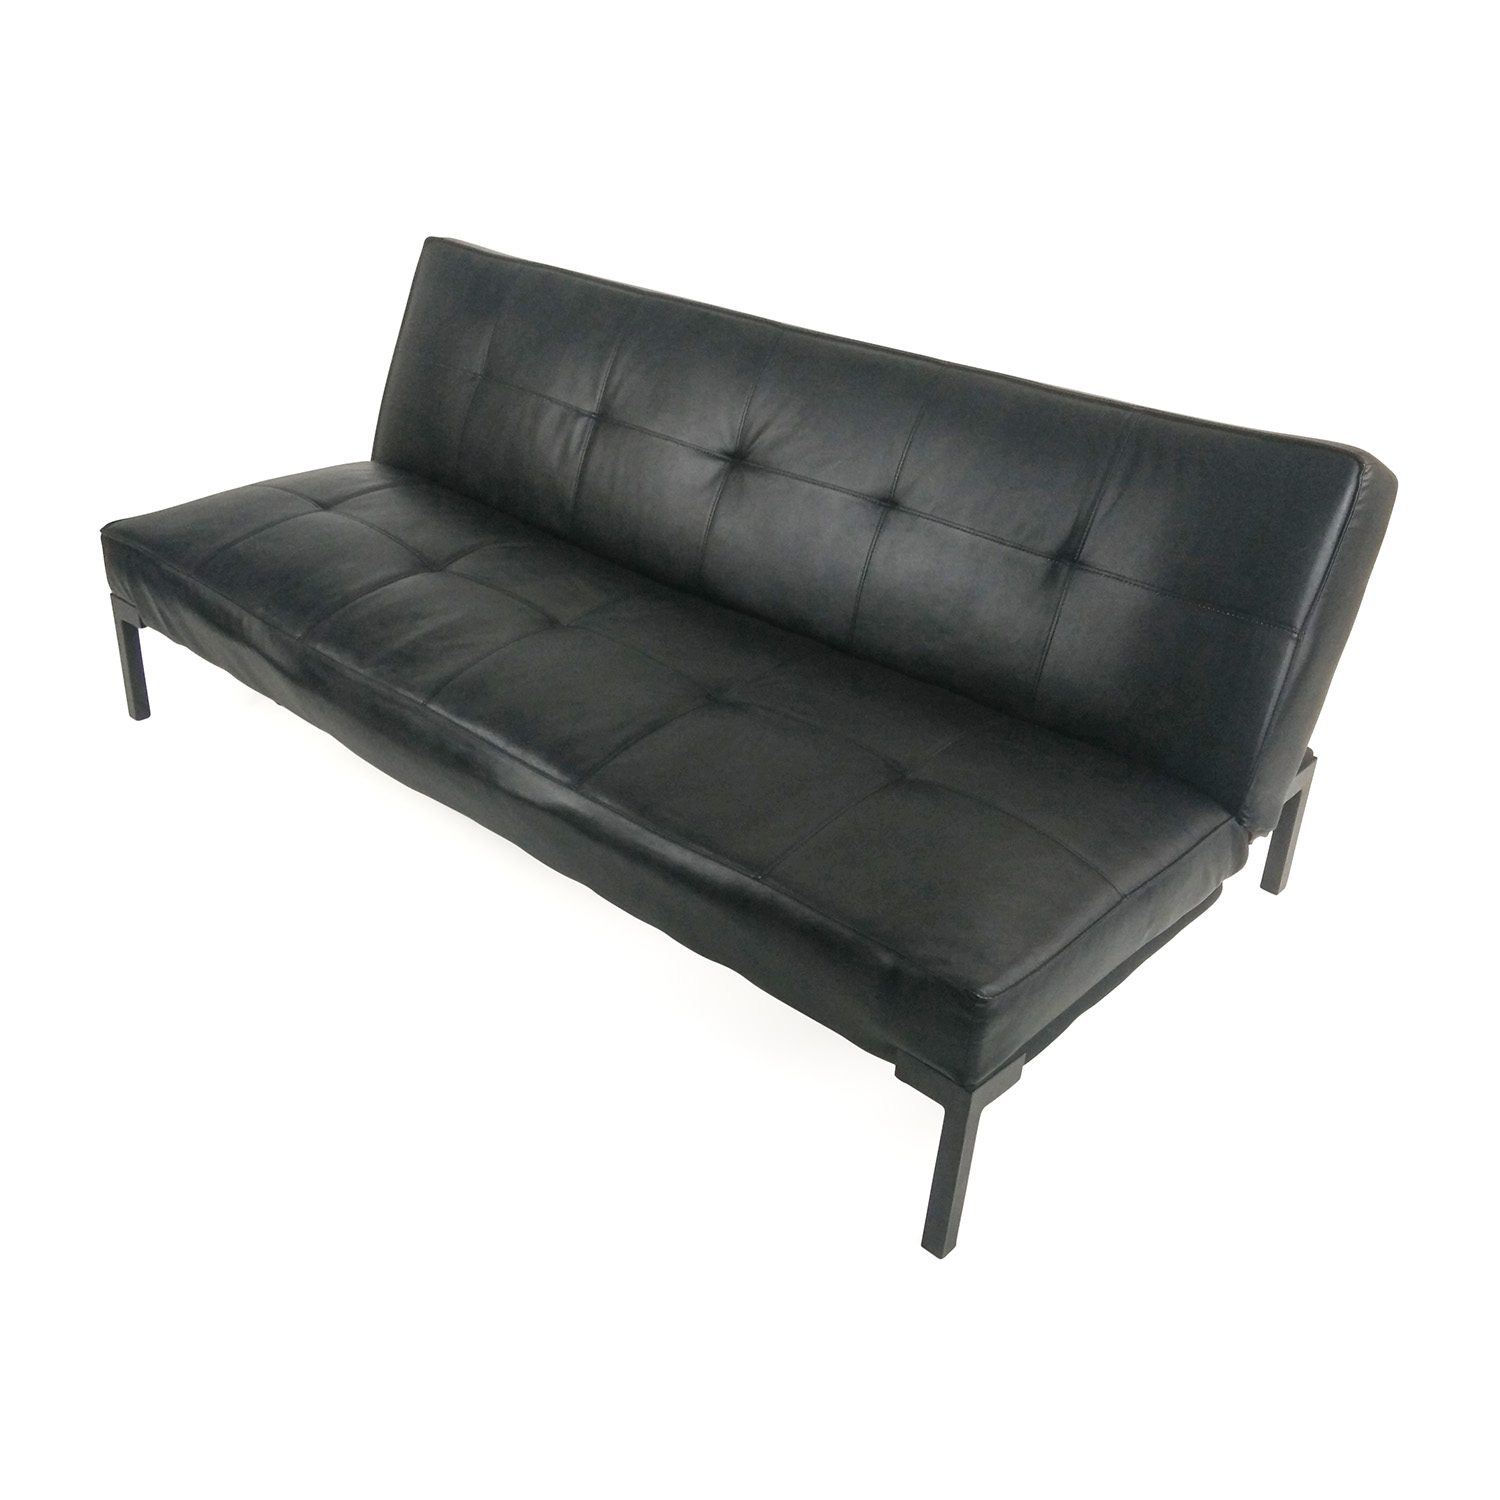 ... Buy French Make Leather Adjustable Futon French Make Sofas ...